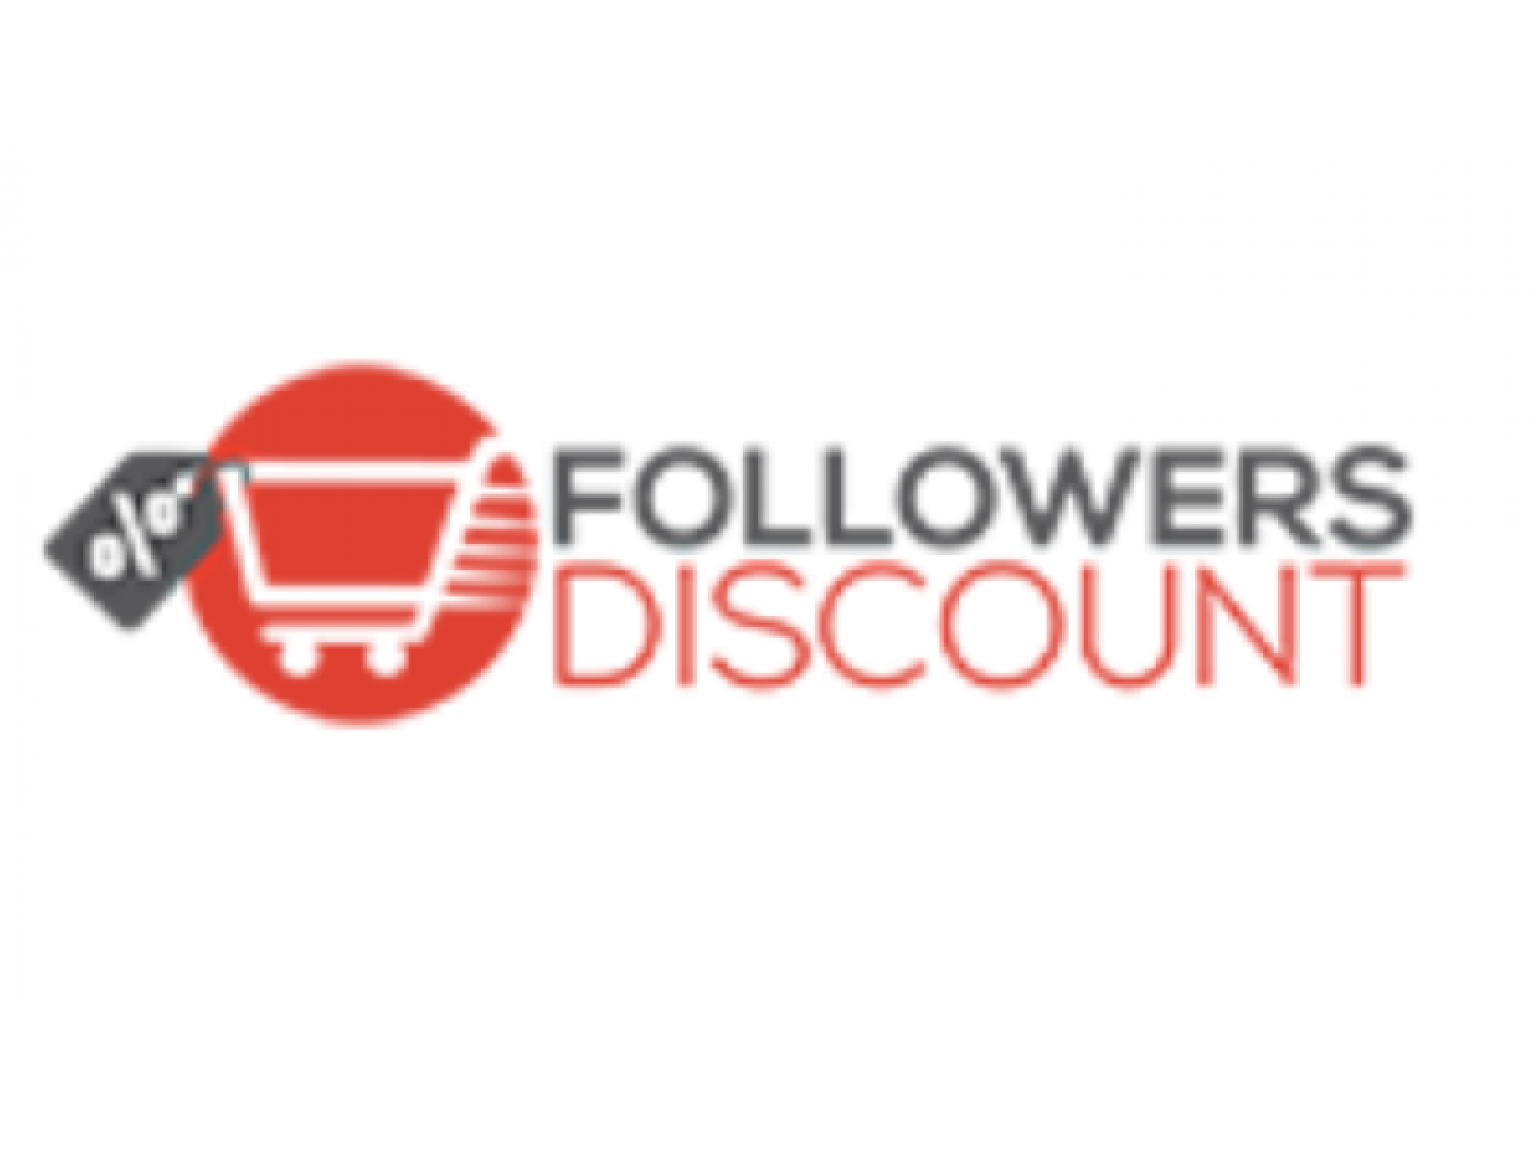 Followers Discount